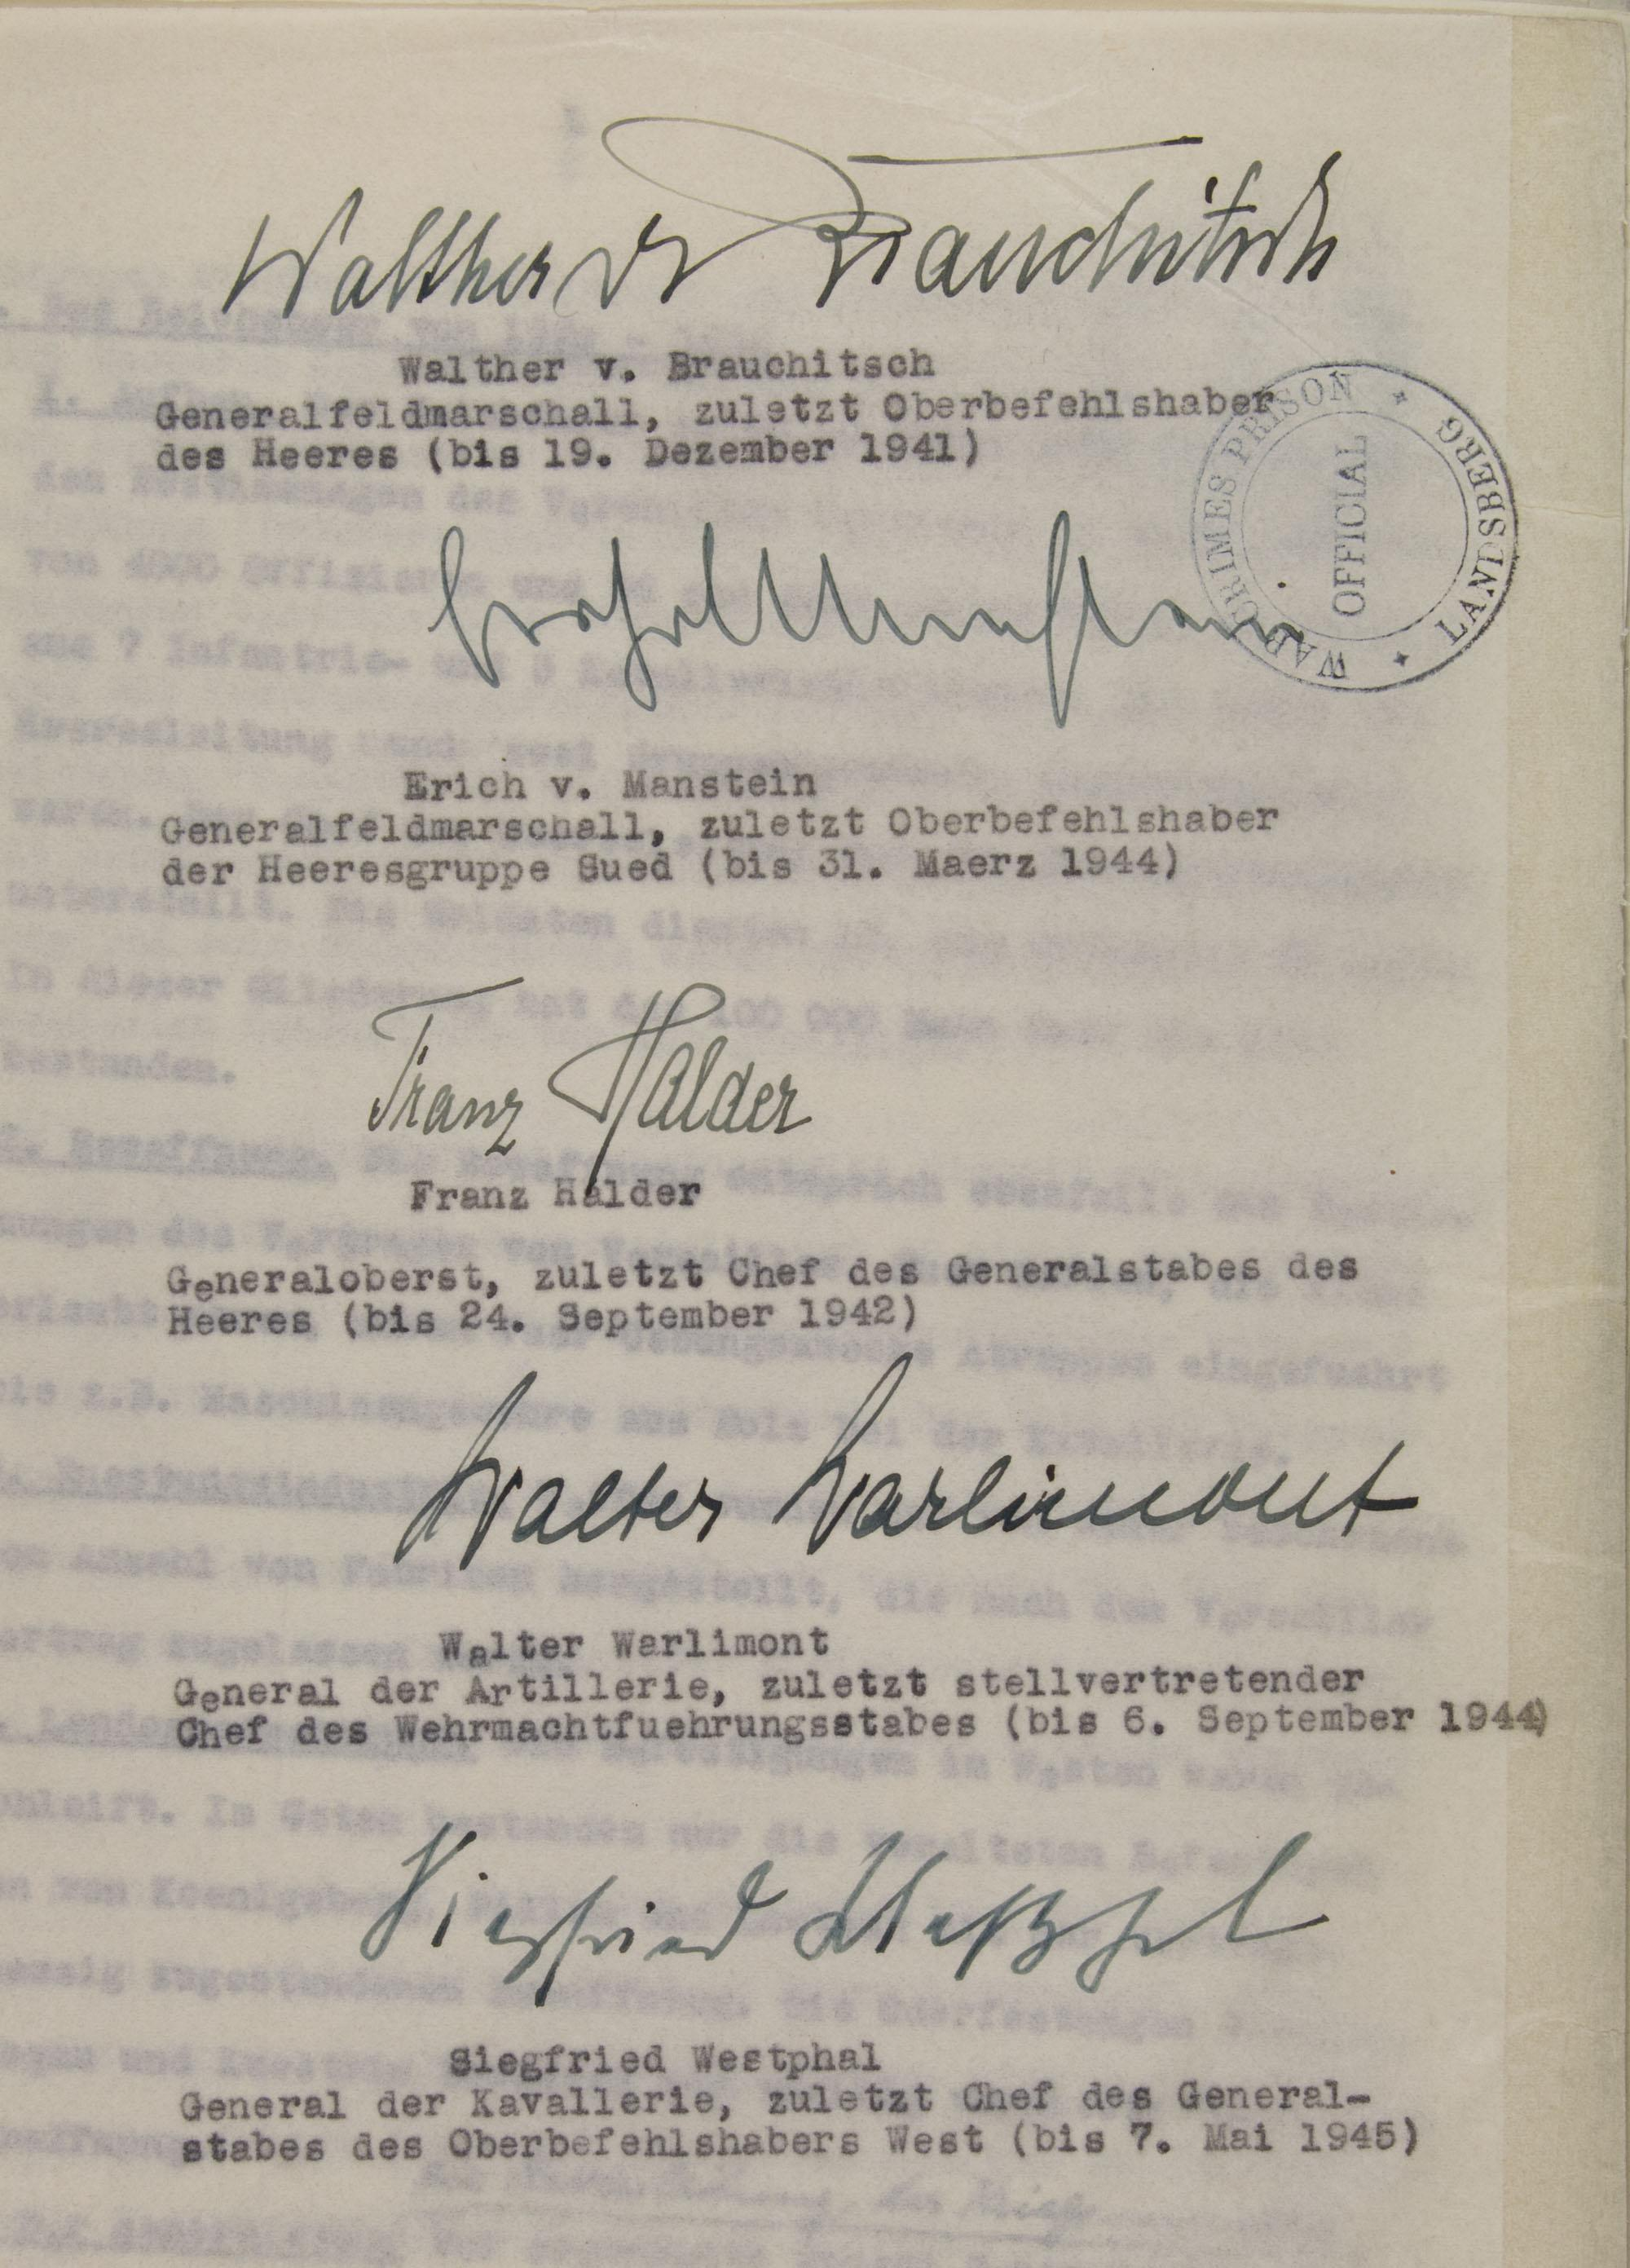 WALTER WARLIMONT'S COPY OF THE 'DECLARATION BY THE FIVE GERMAN GENERALS', PLANNED FOR NUREMBERG